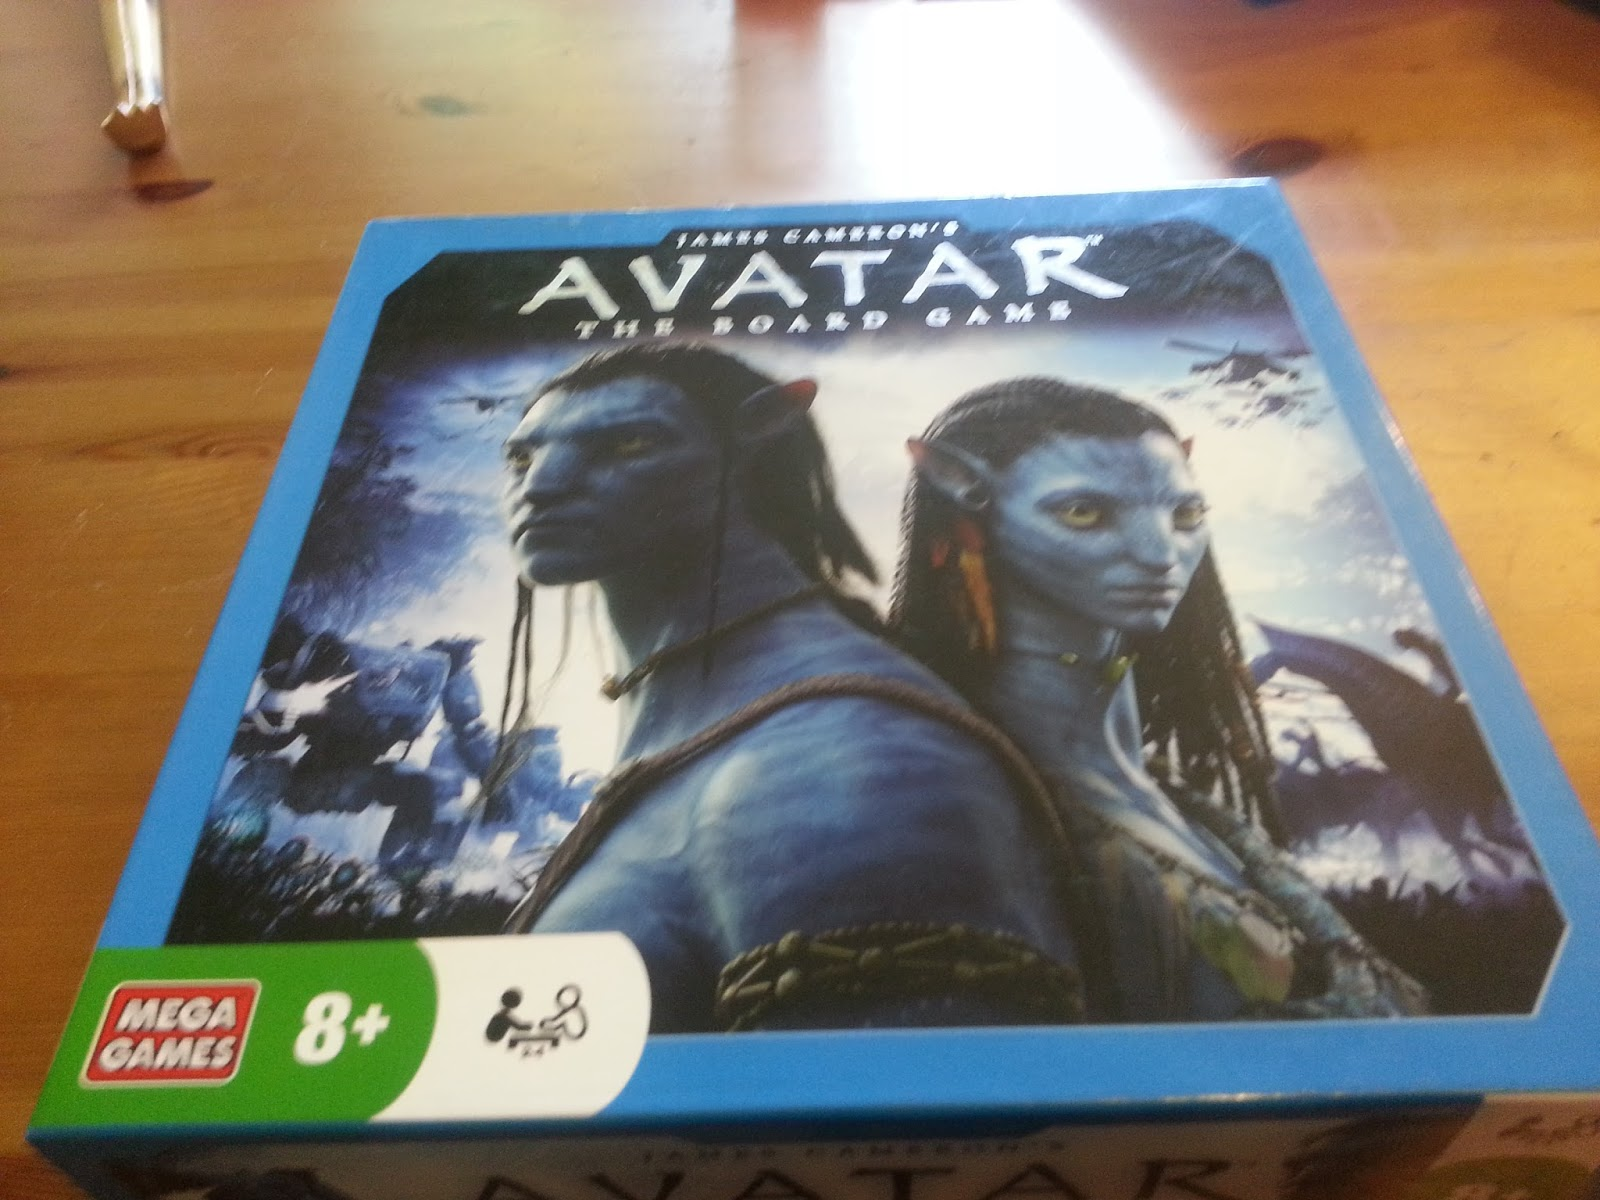 The Ghost without a Shell: Avatar the Board game – Or why